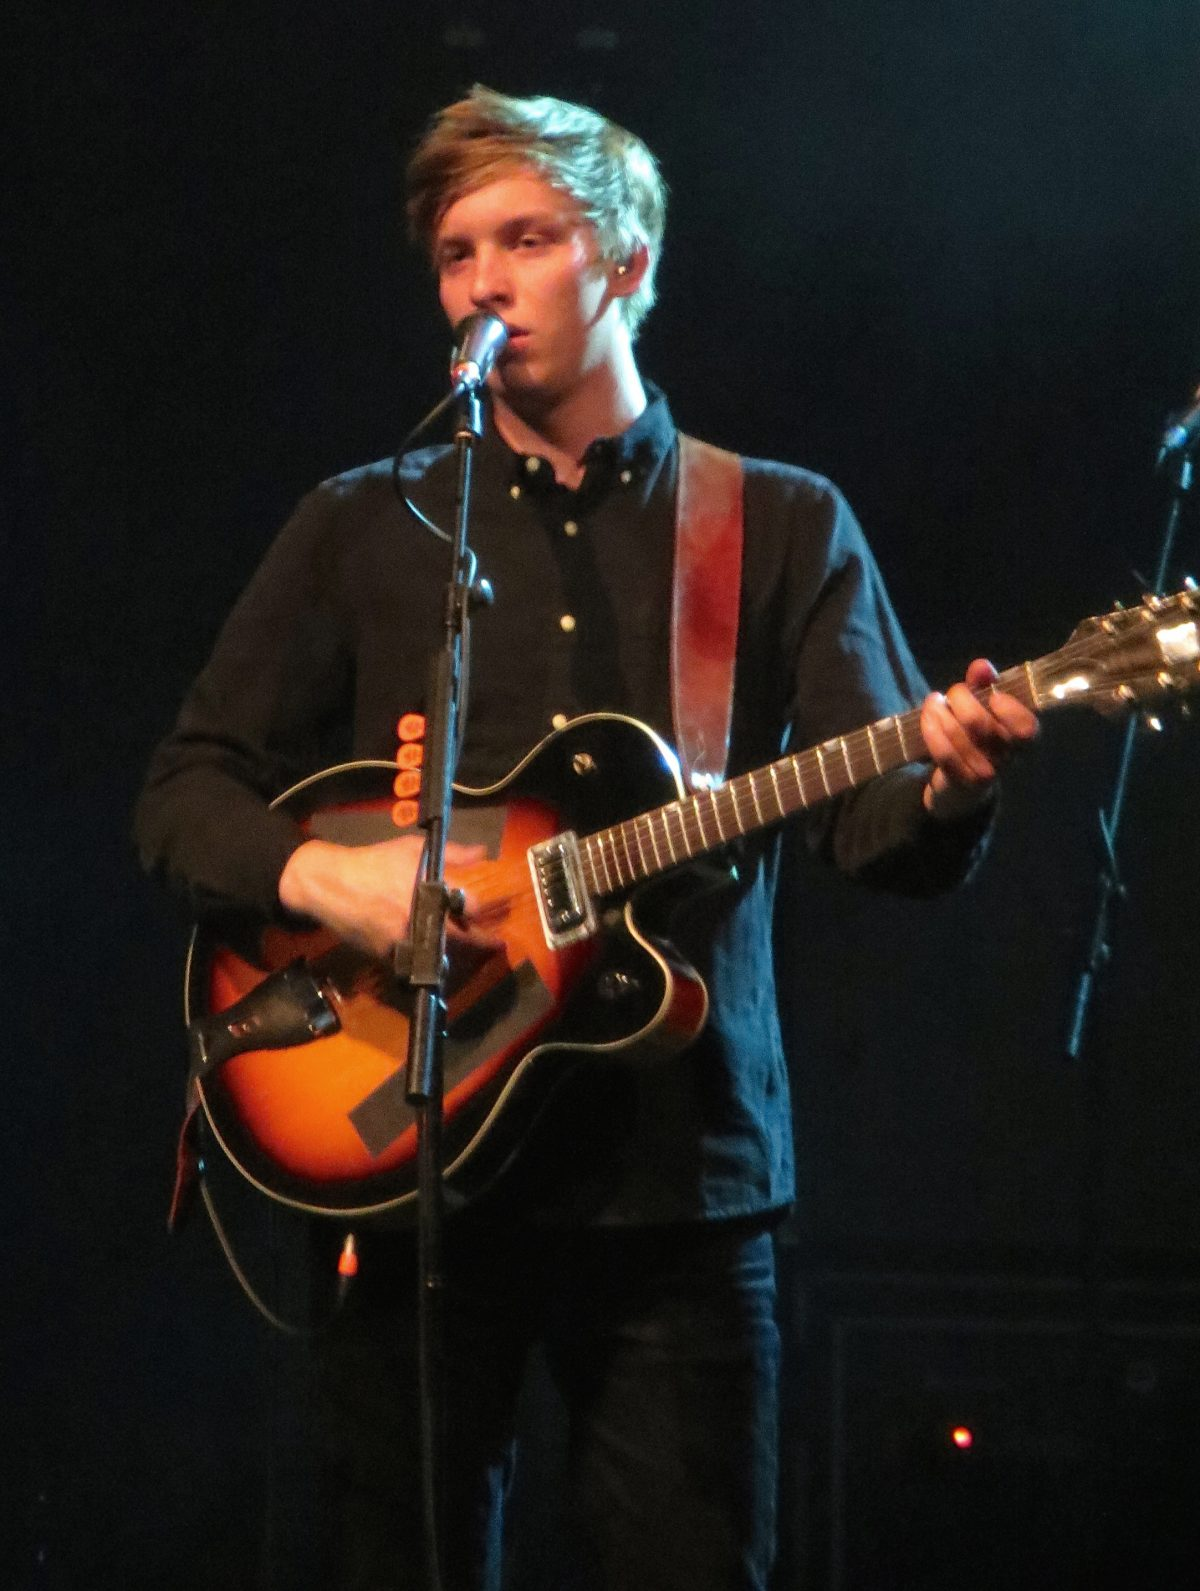 George Ezra Extends UK Tour